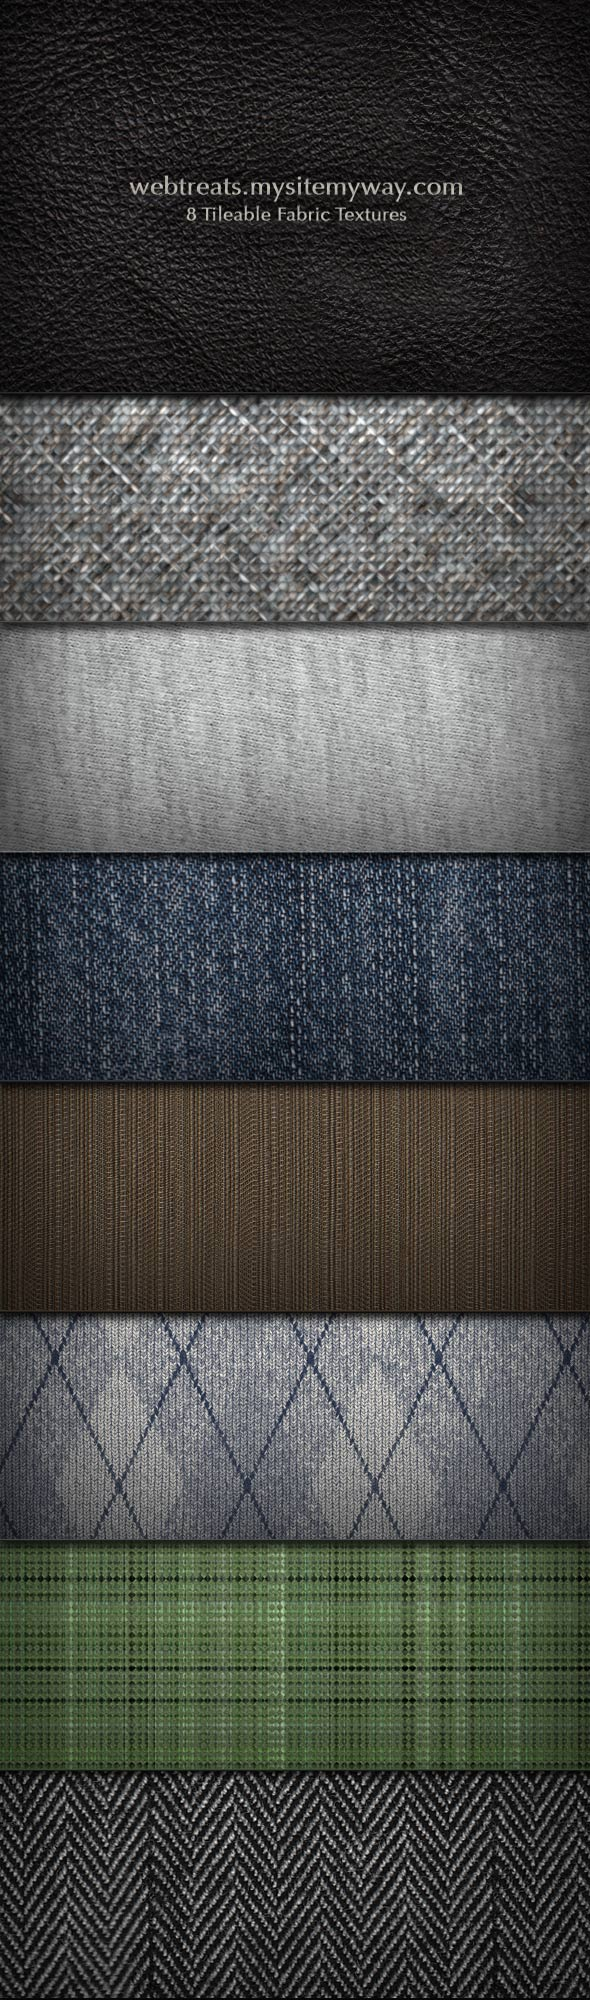 Fabric Texture and Pattern Set